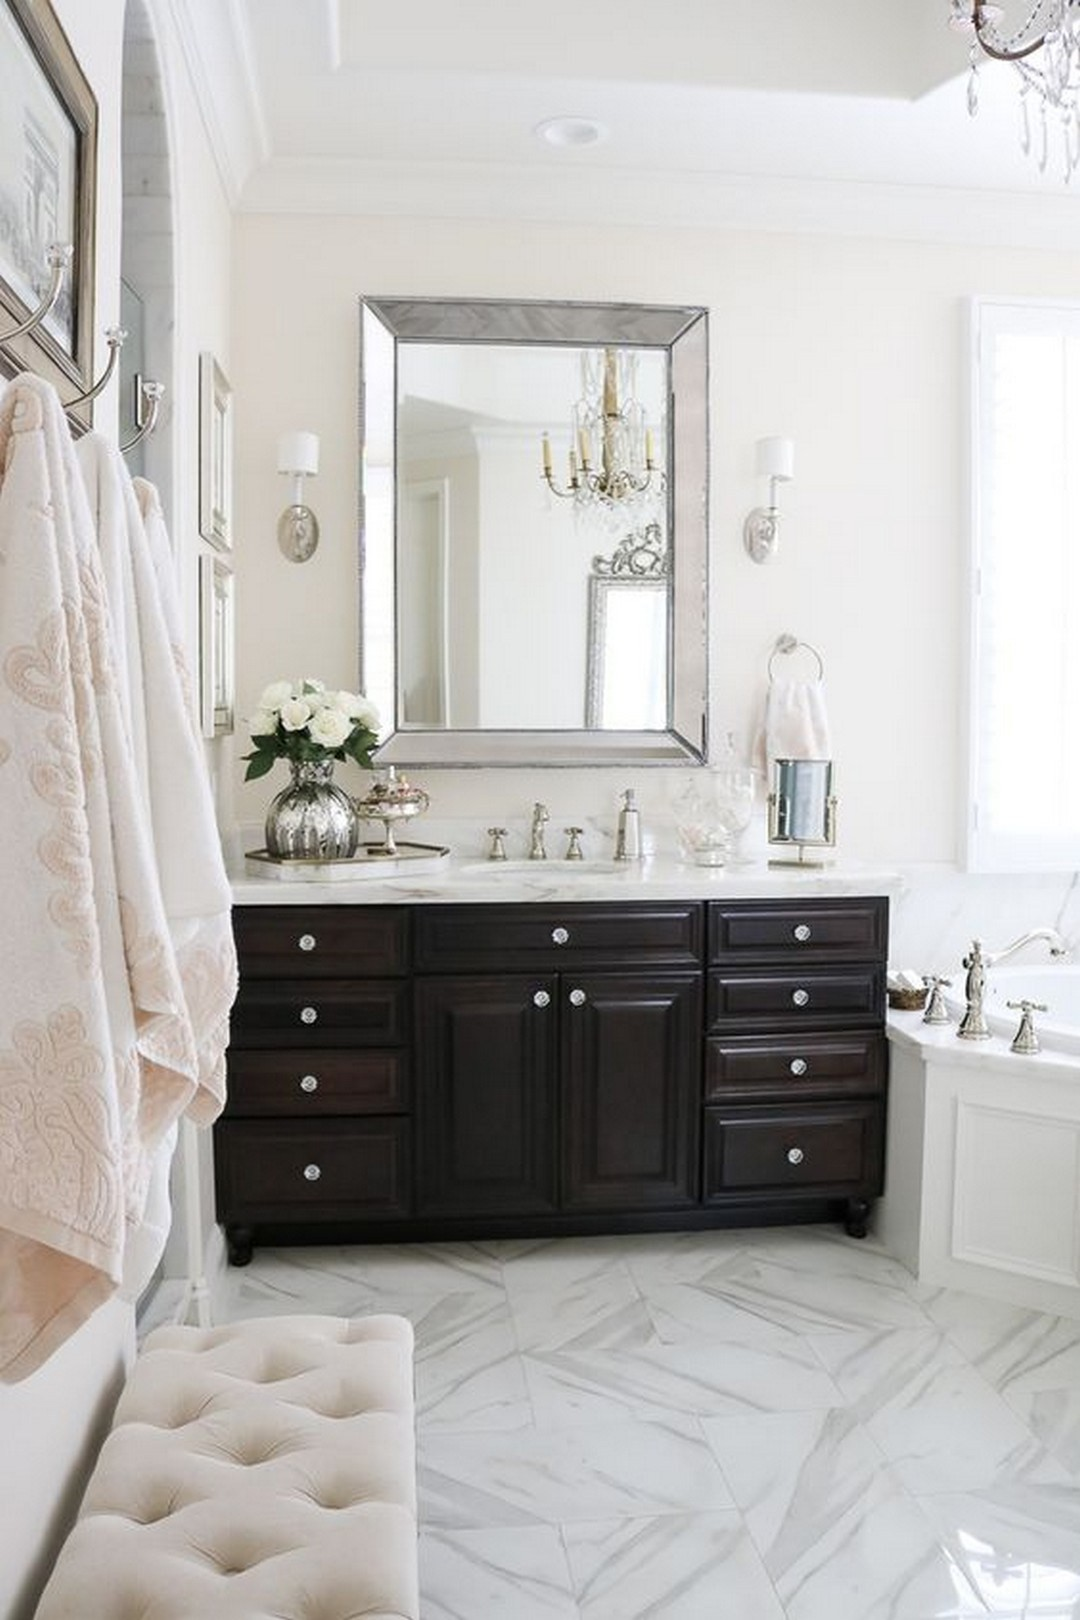 10 MAKE ELEGANT MASTER BATHROOM WITH THE FOLLOWING GREAT IDEAS